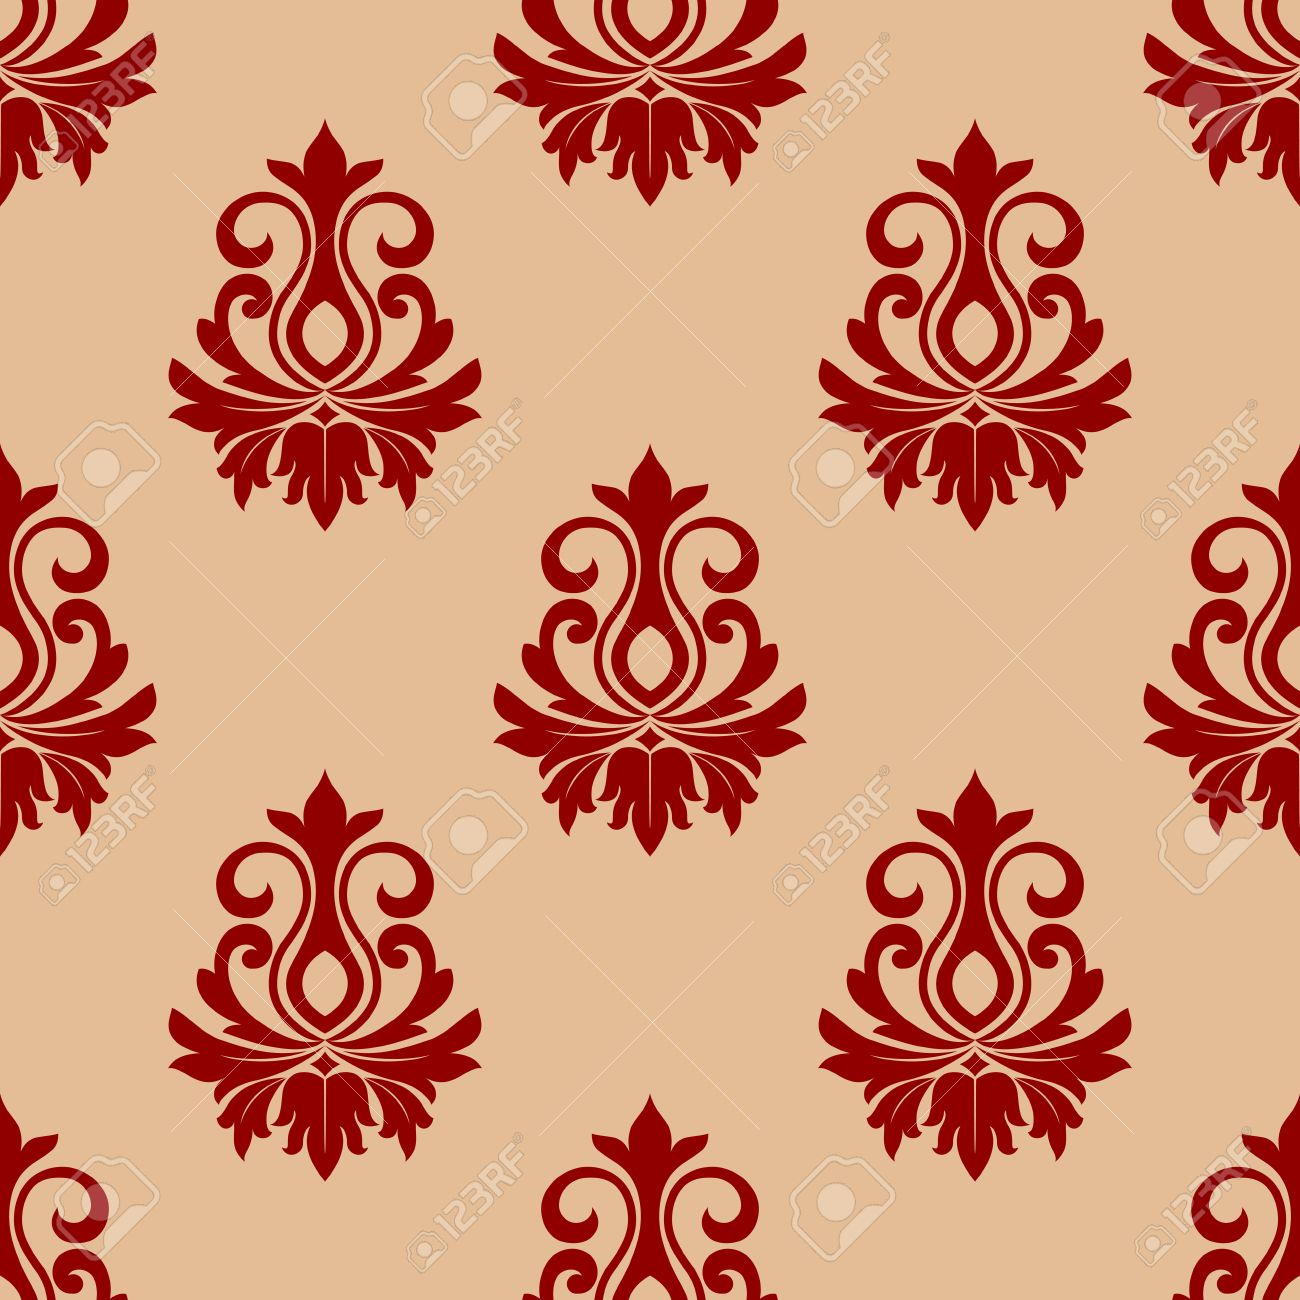 Beige And Maroon Floral Seamless Pattern Background For Wallpaper